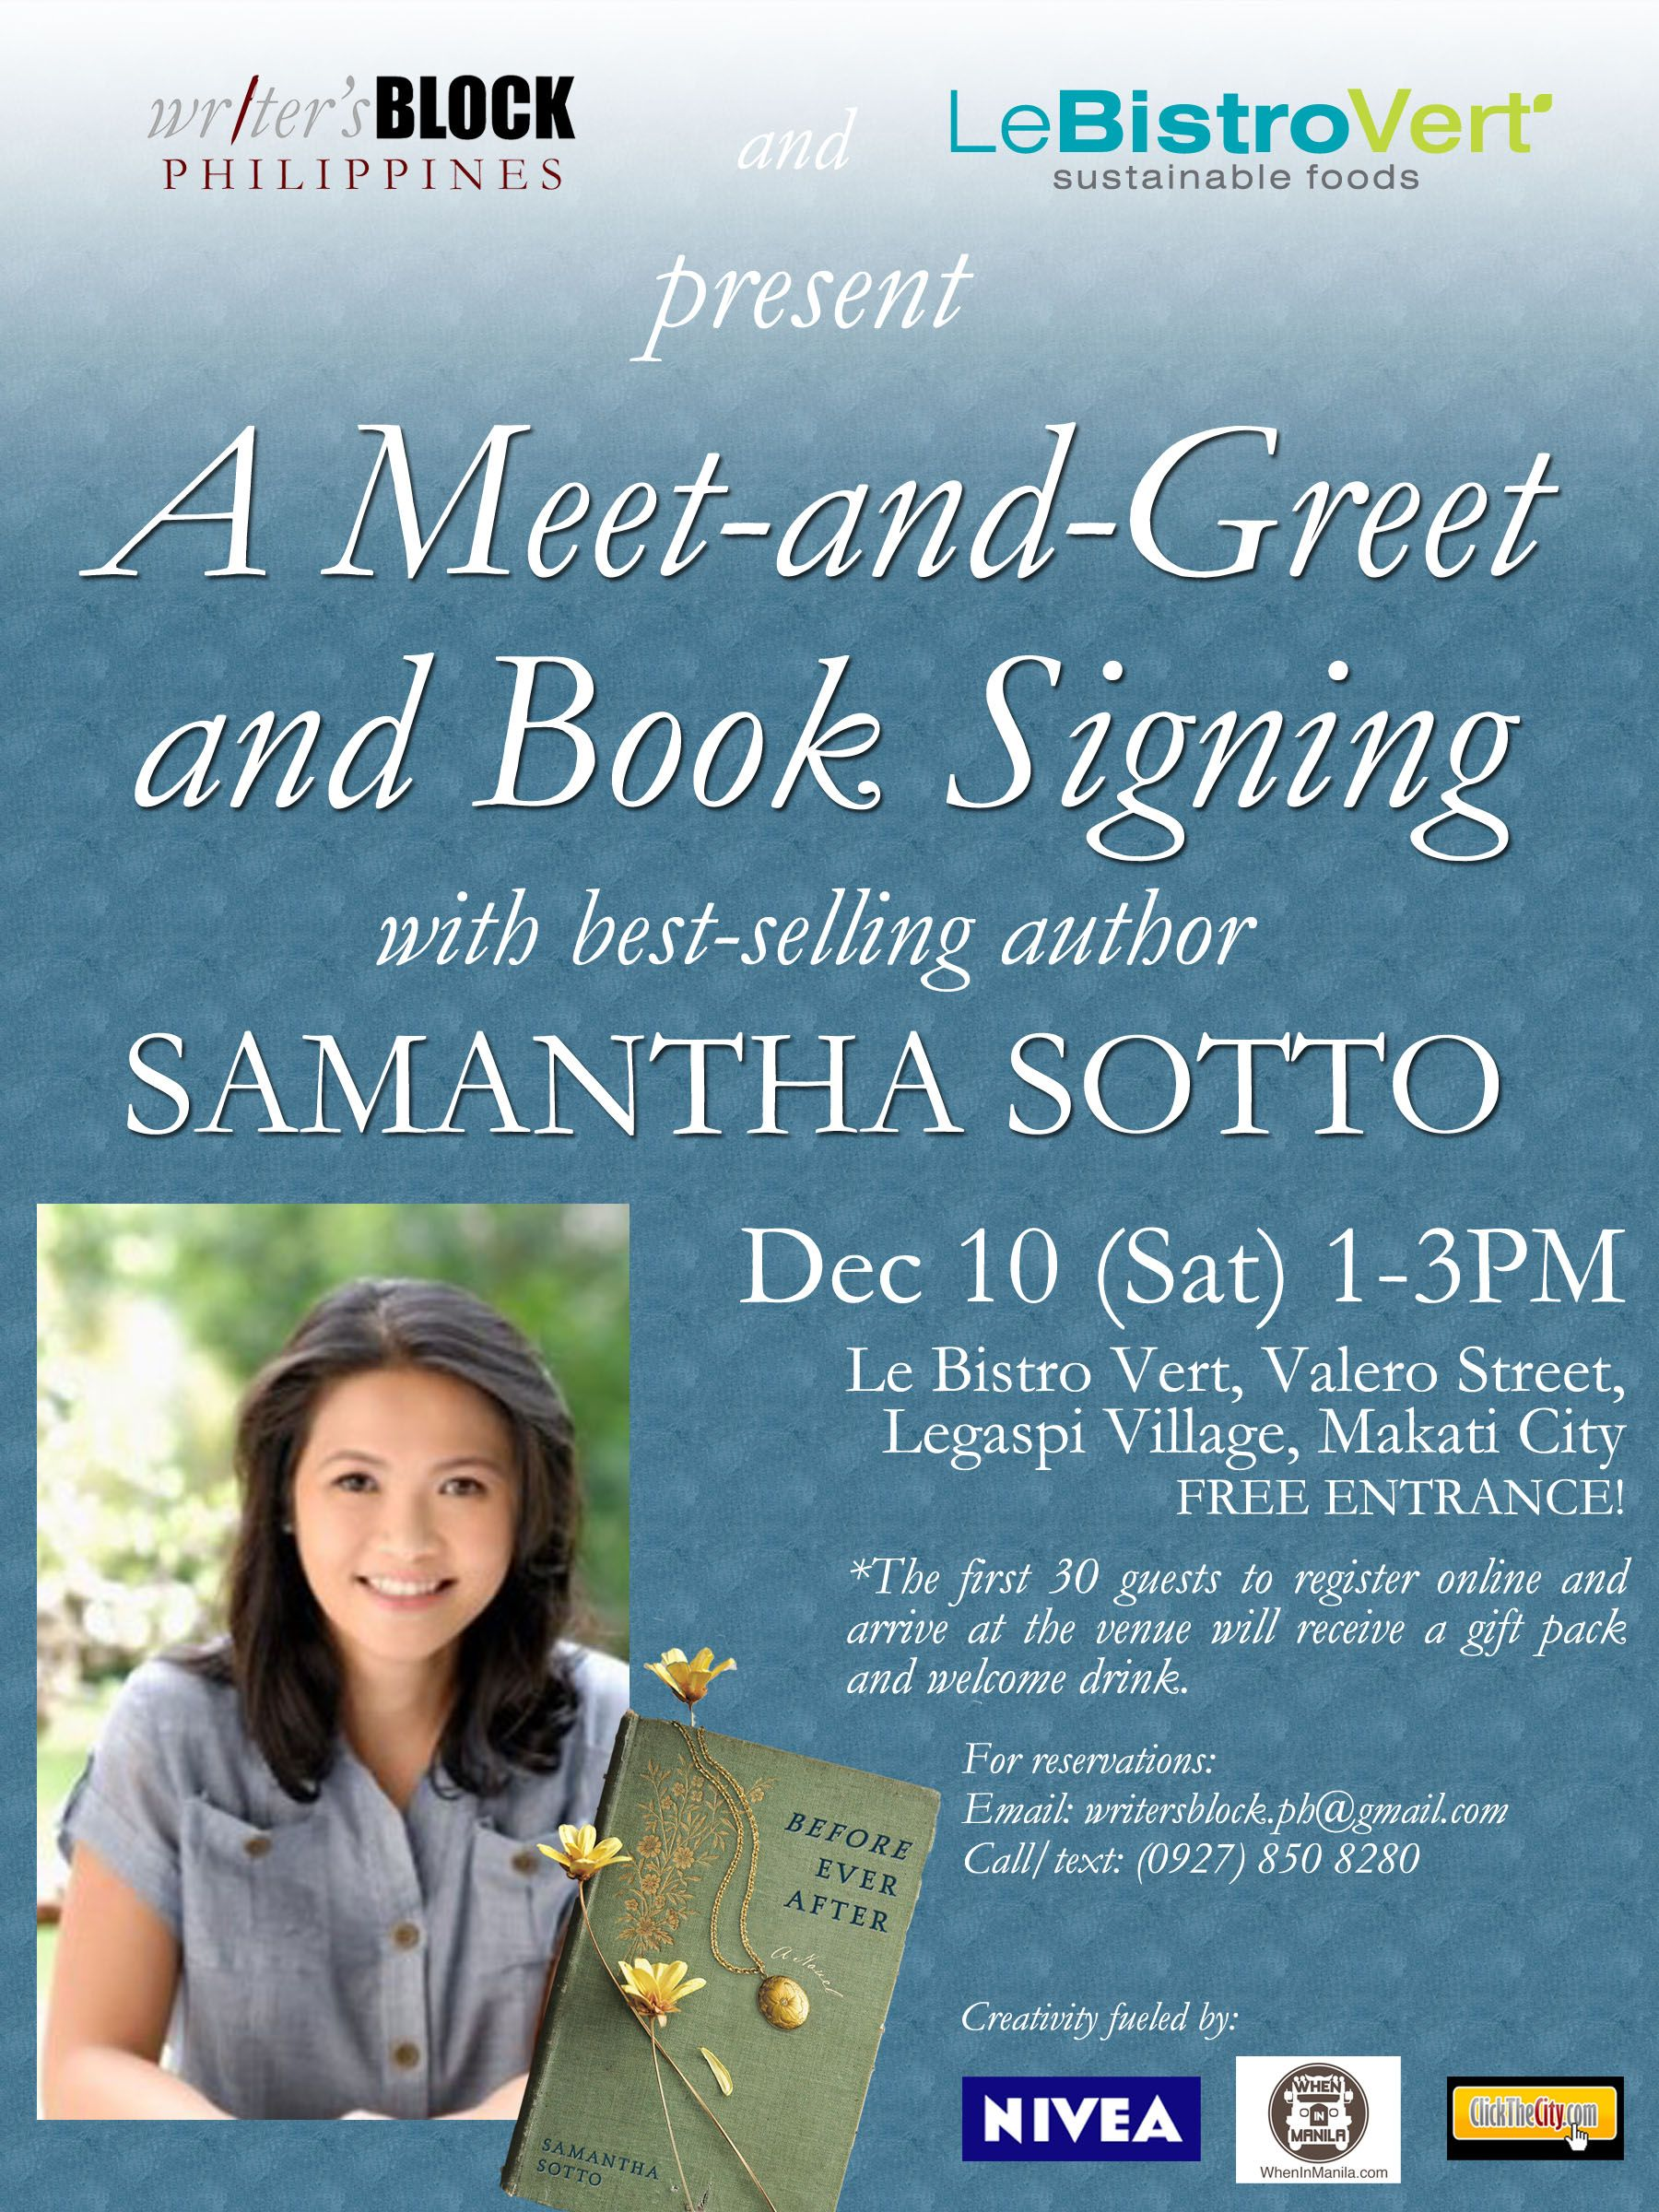 Book Signing Poster For Promoting Book Google Search Marketing